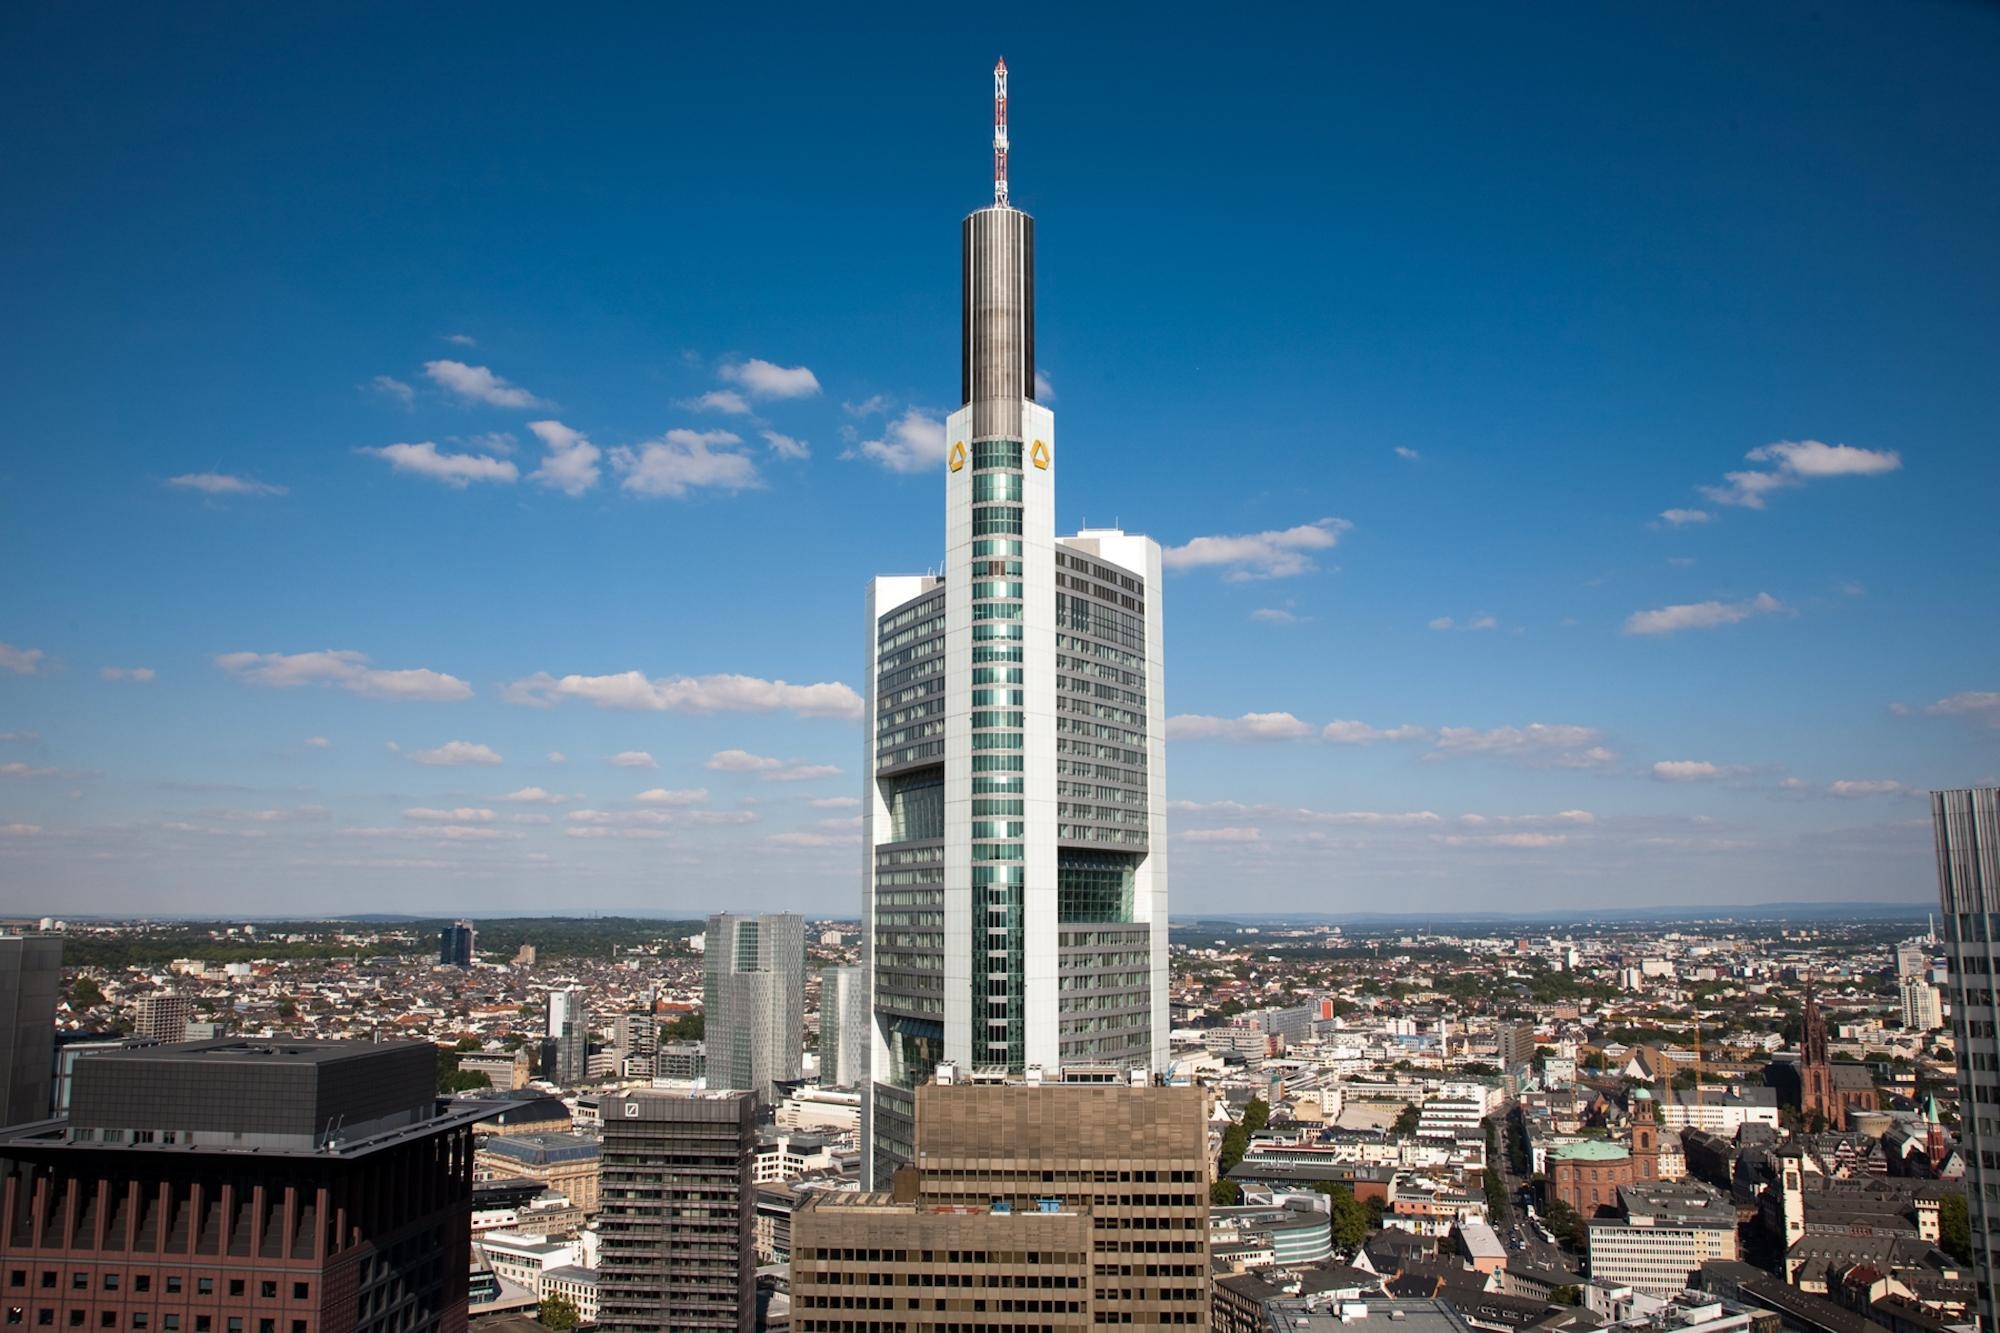 Germany: EIB Group and Commerzbank join forces to support small and mid-sized companies in COVID-crisis